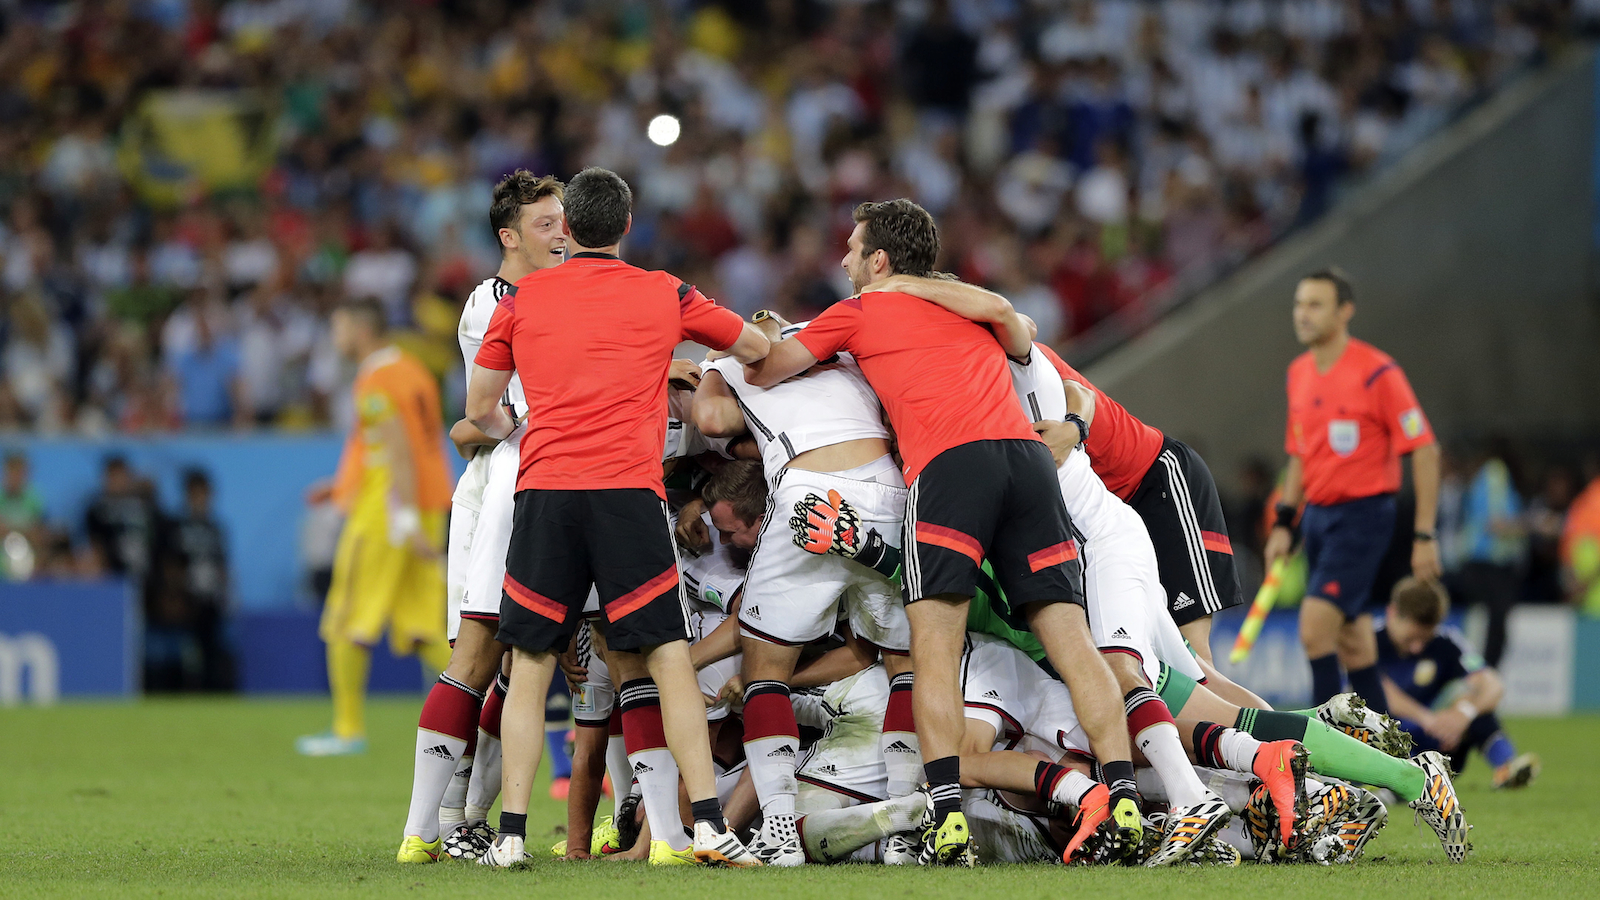 German players celebrate after the World Cup final soccer match between Germany and Argentina at the Maracana Stadium in Rio de Janeiro, Brazil, Sunday, July 13, 2014. Germany won the match 1-0. (Matthias Schrader/AP)